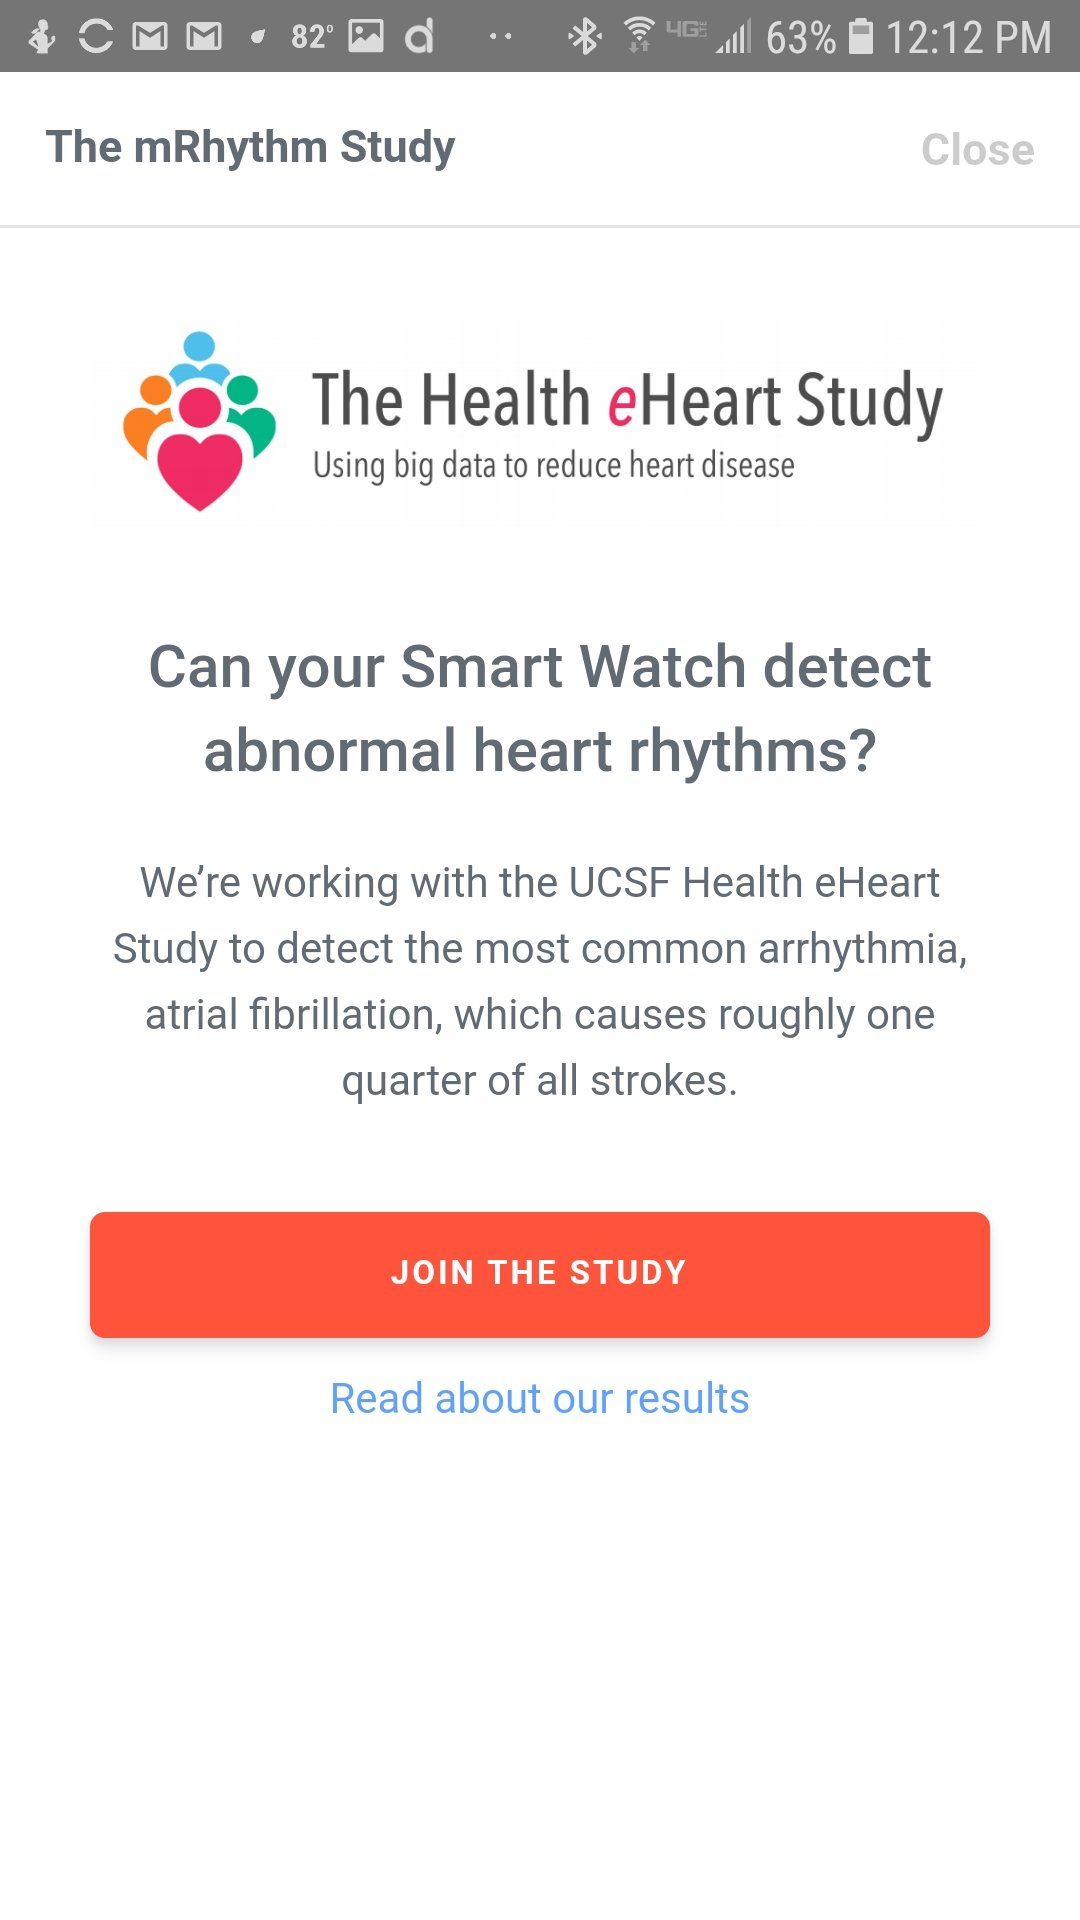 Can Fitness Trackers Detect Afib? A Study is Hoping to Find